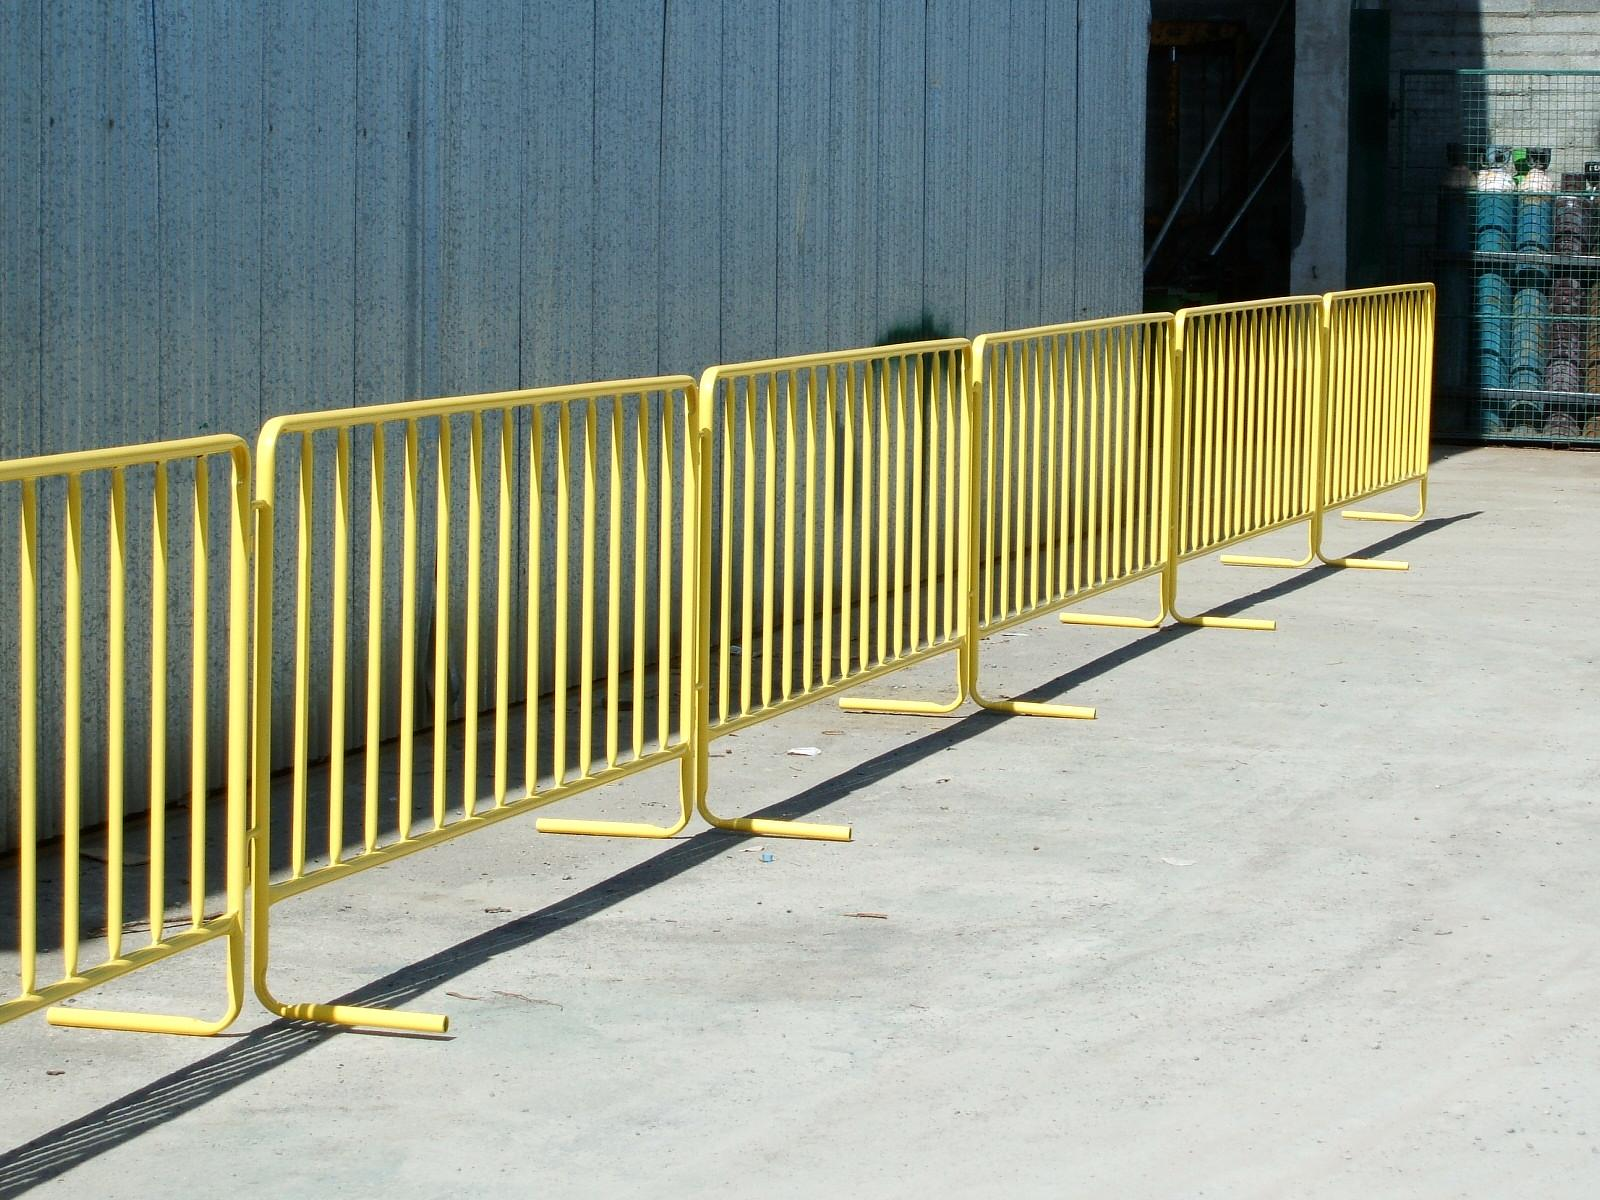 Temporary%20Safety%20Guardrail